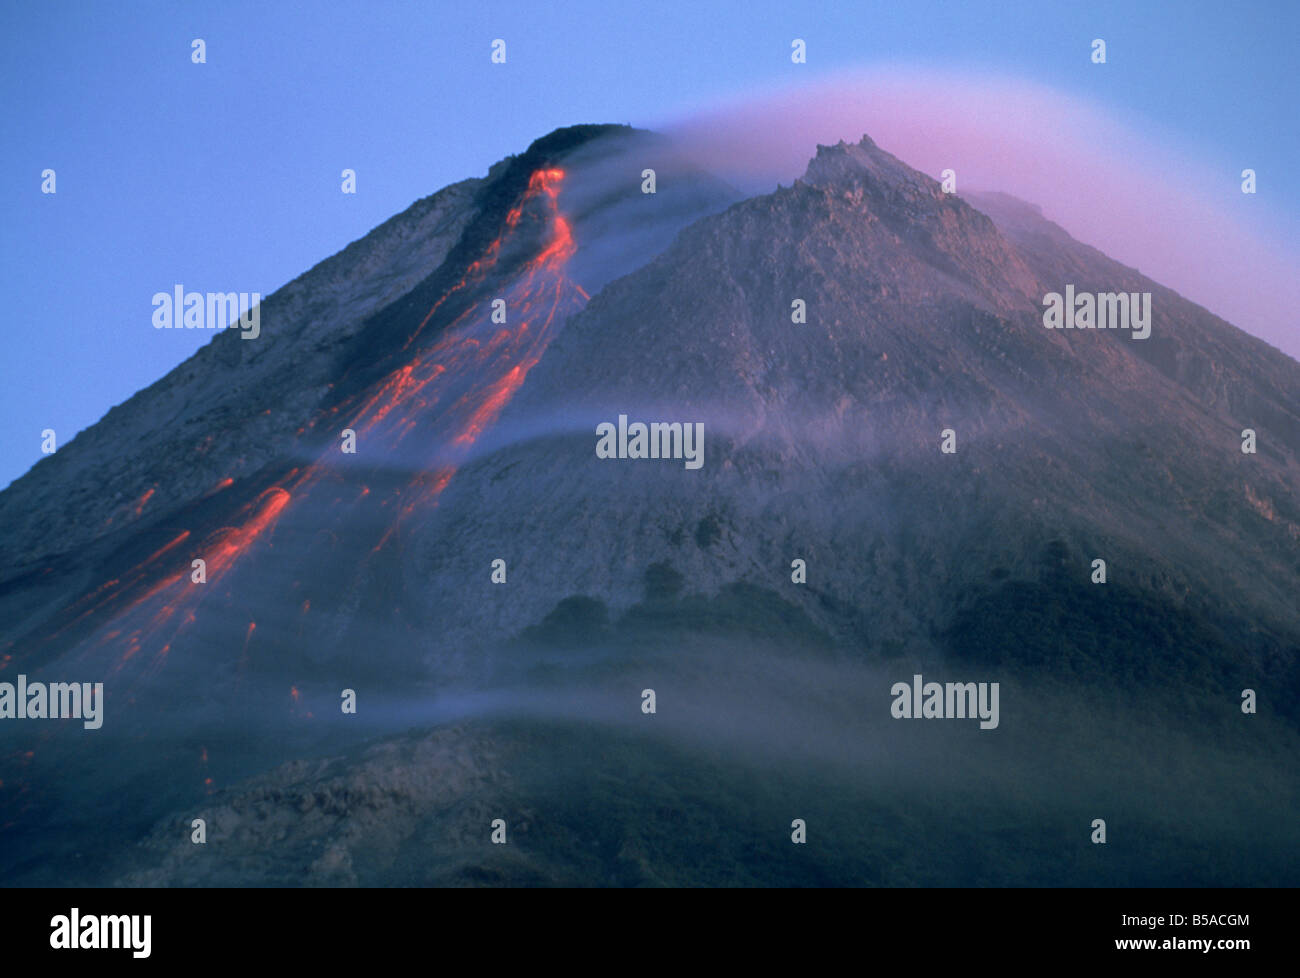 Eruption of Gunung Merapi, a highly active volcano near Yogyakarta, Java, Indonesia, Southeast Asia - Stock Image